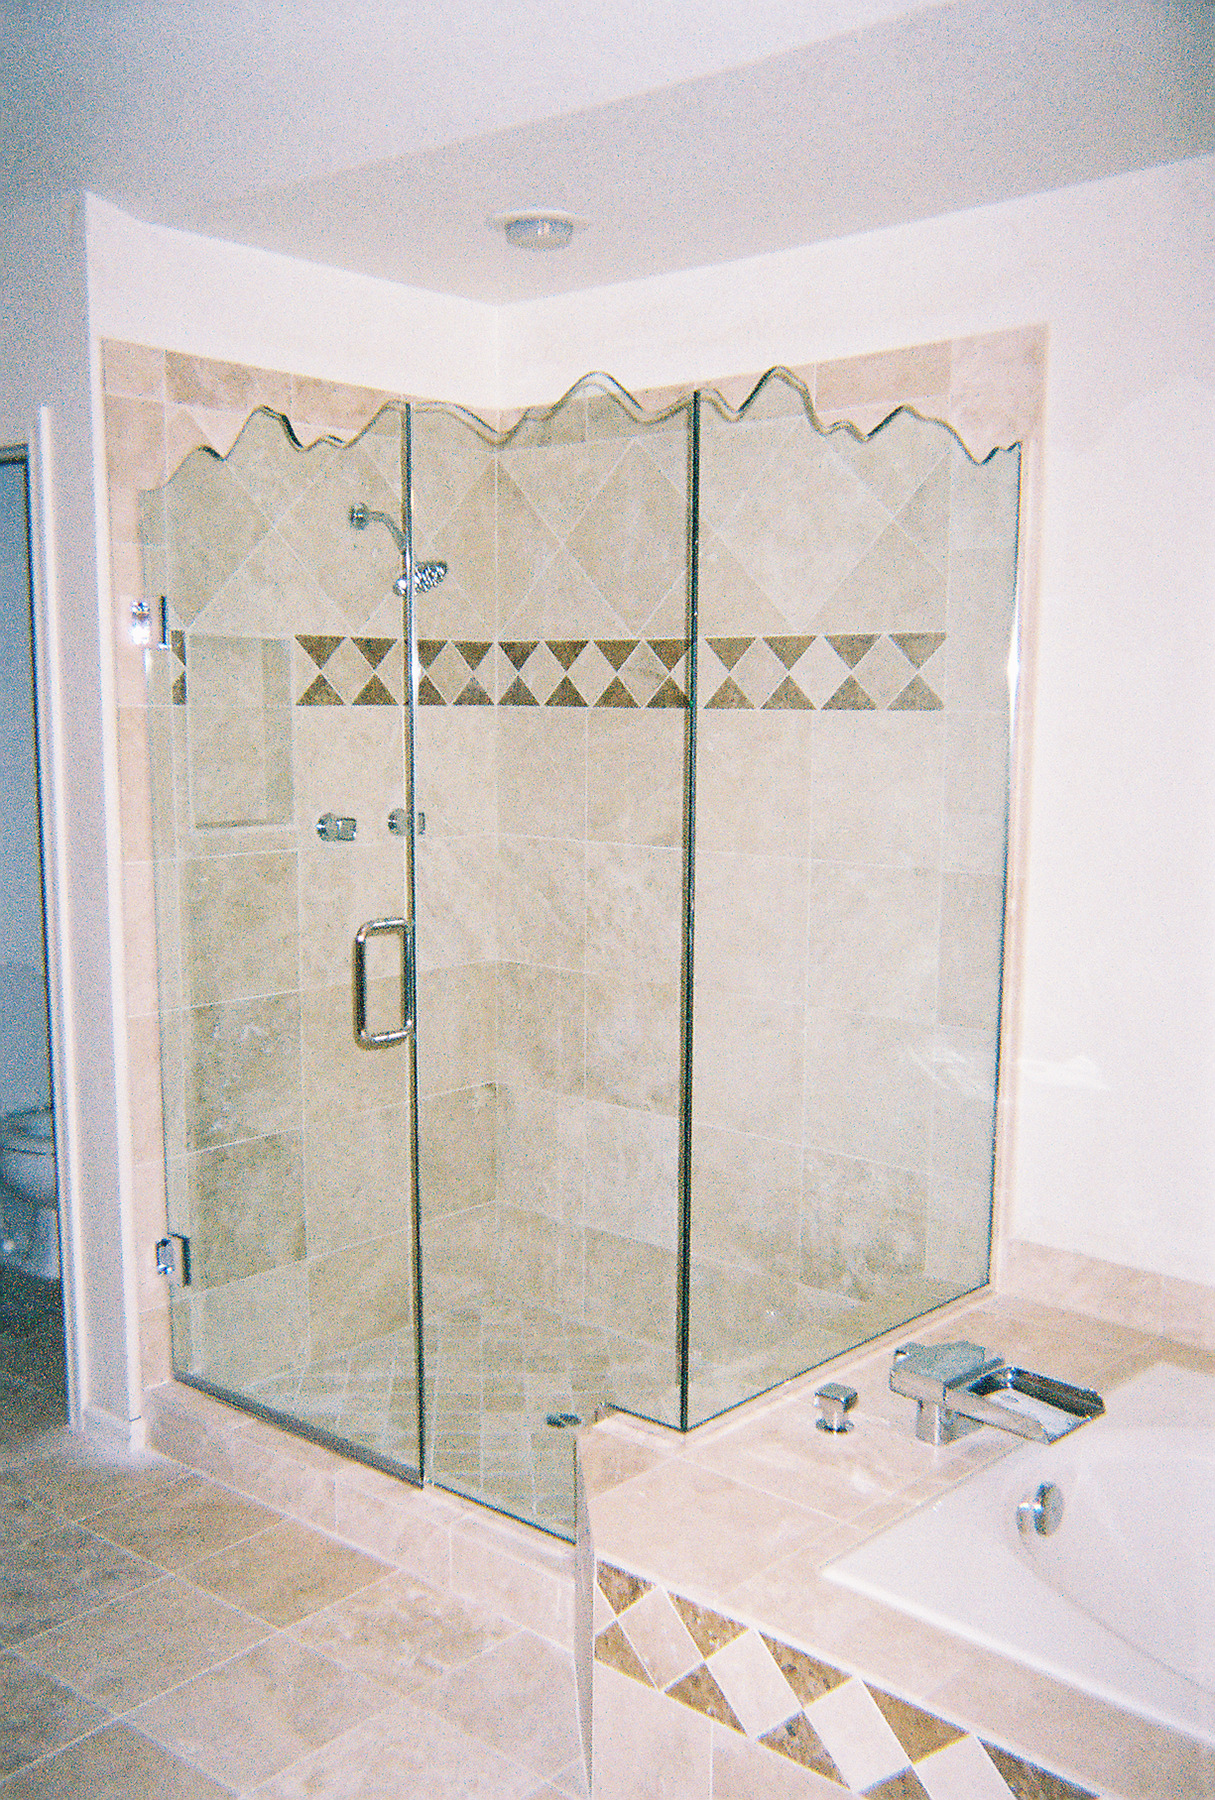 clayton glass glendales premier shower enclosure company